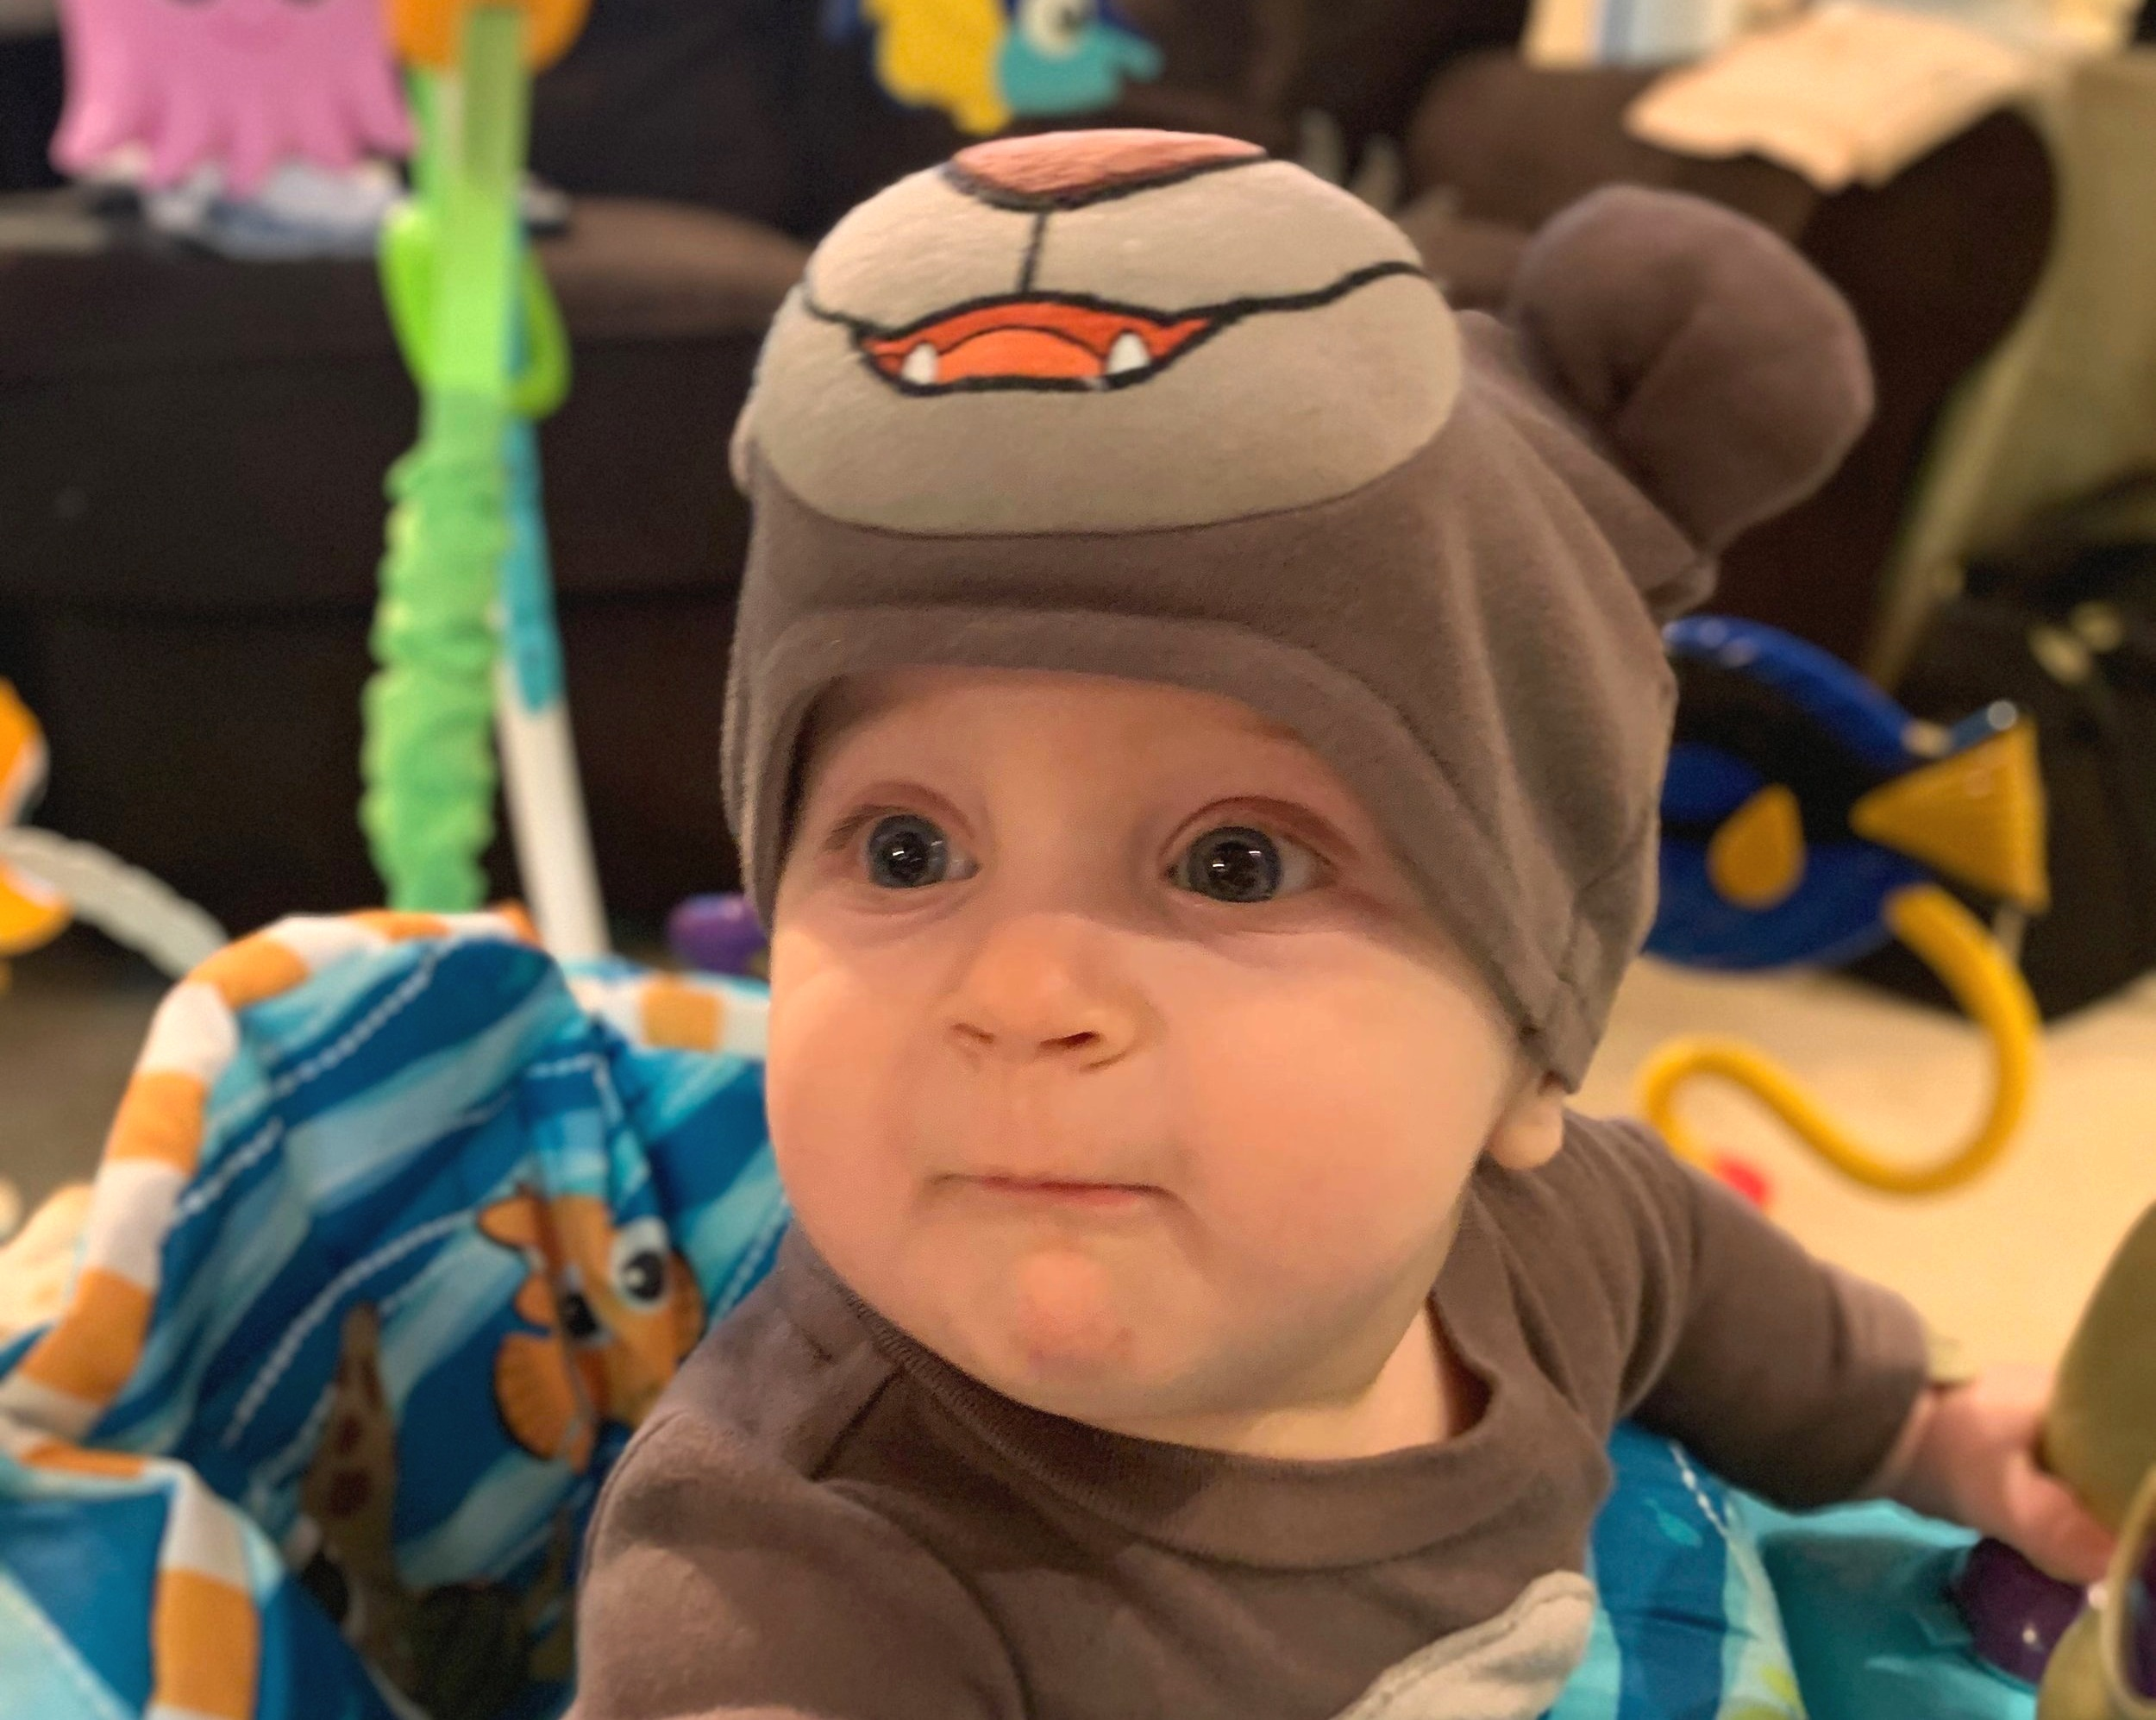 KennyBear was born on Boss's Day 2018. Our Boss Baby!